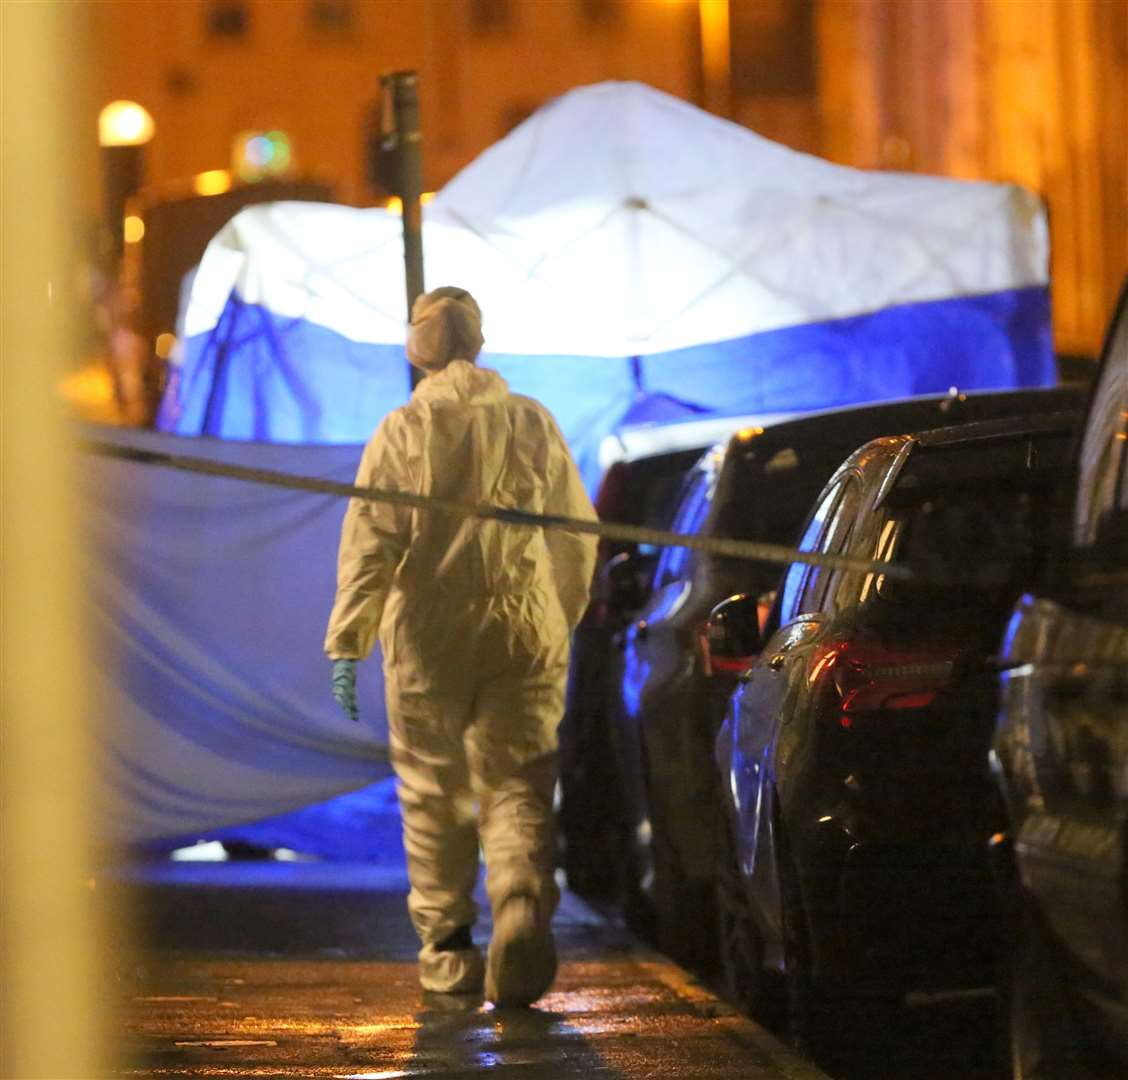 The scene of the murder on Friday, December 20 in Fox Street, Gillingham. Picture: UKNIP